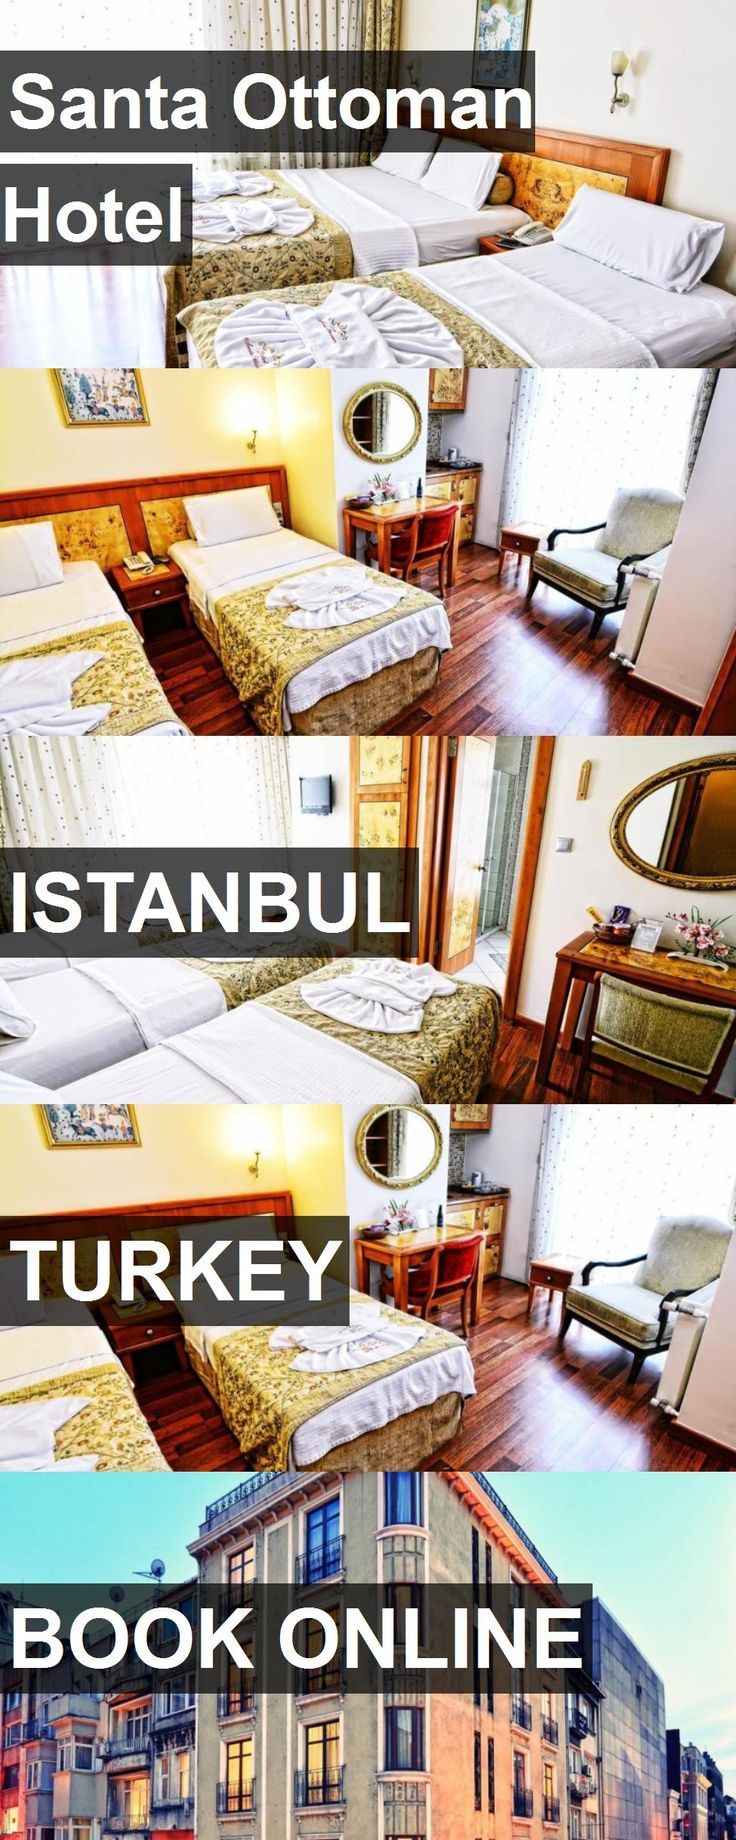 Hotel Santa Ottoman Hotel in Istanbul, Turkey. For more information, photos, reviews and best prices please follow the link. #Turkey #Istanbul #hotel #travel #vacation